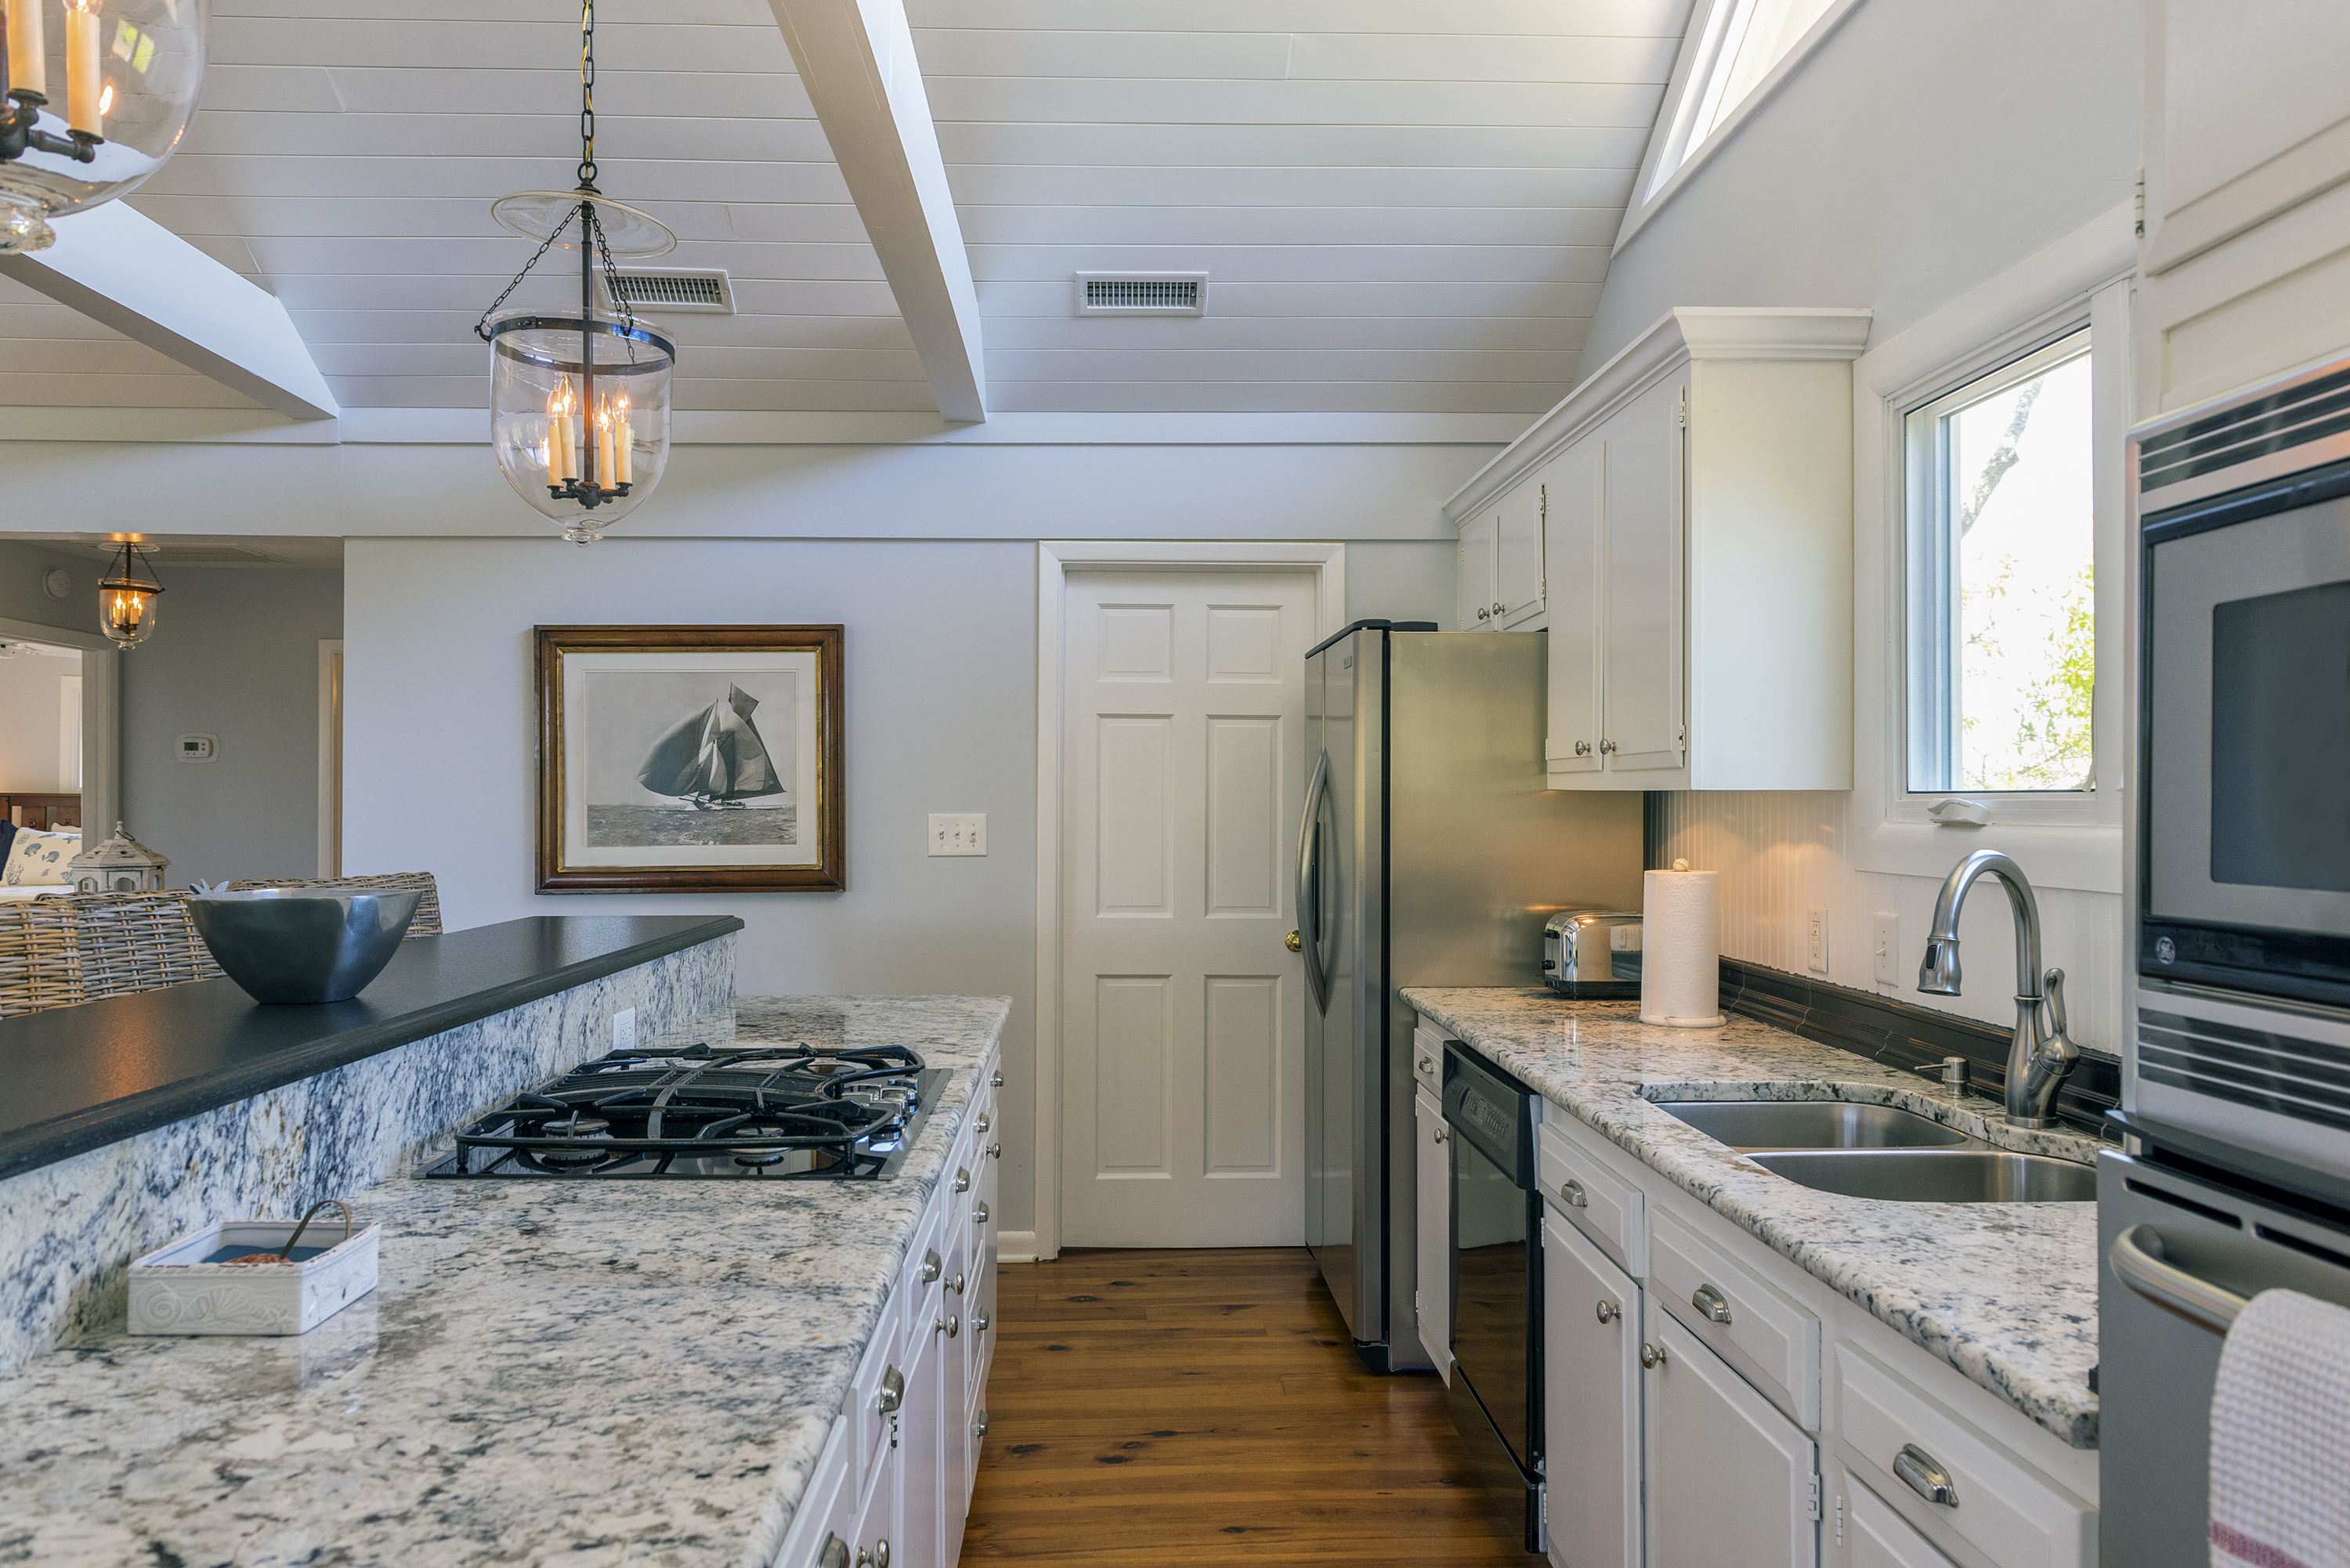 Stainless steel appliances enhance this fabulous kitchen.  The laundry room is off the kitchen.